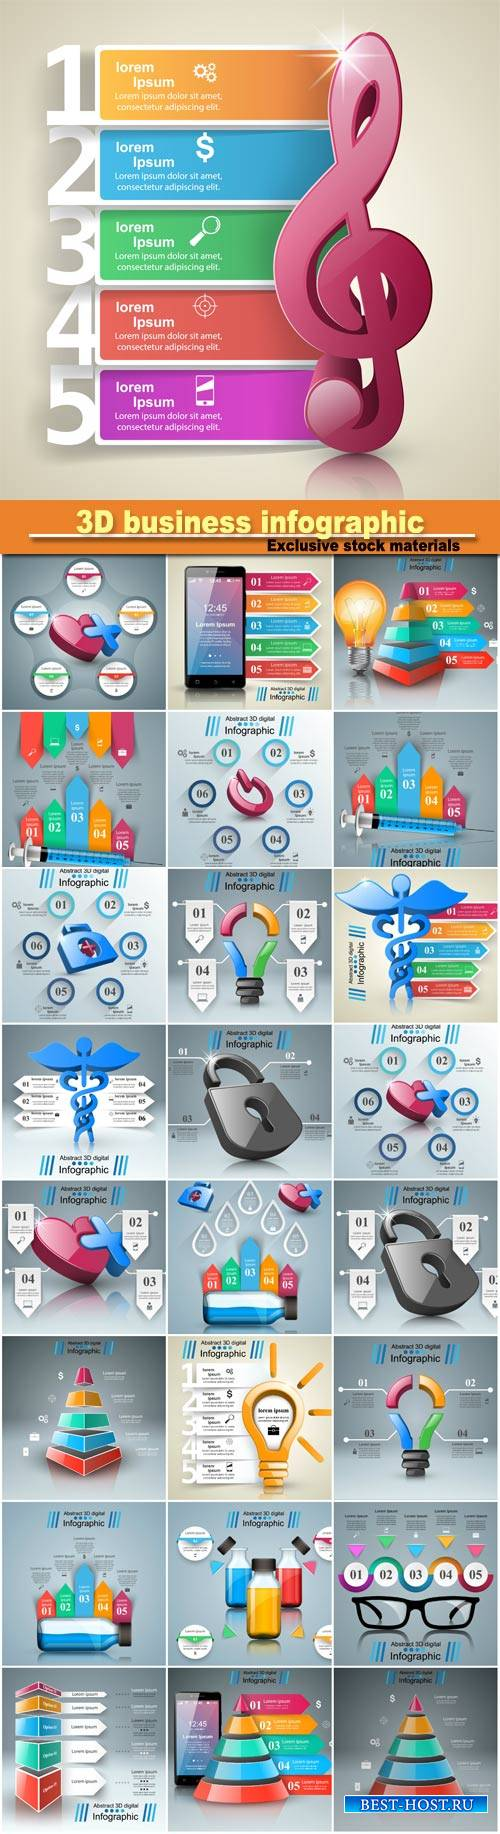 3D business infographic design template and marketing icons, vector illustr ...